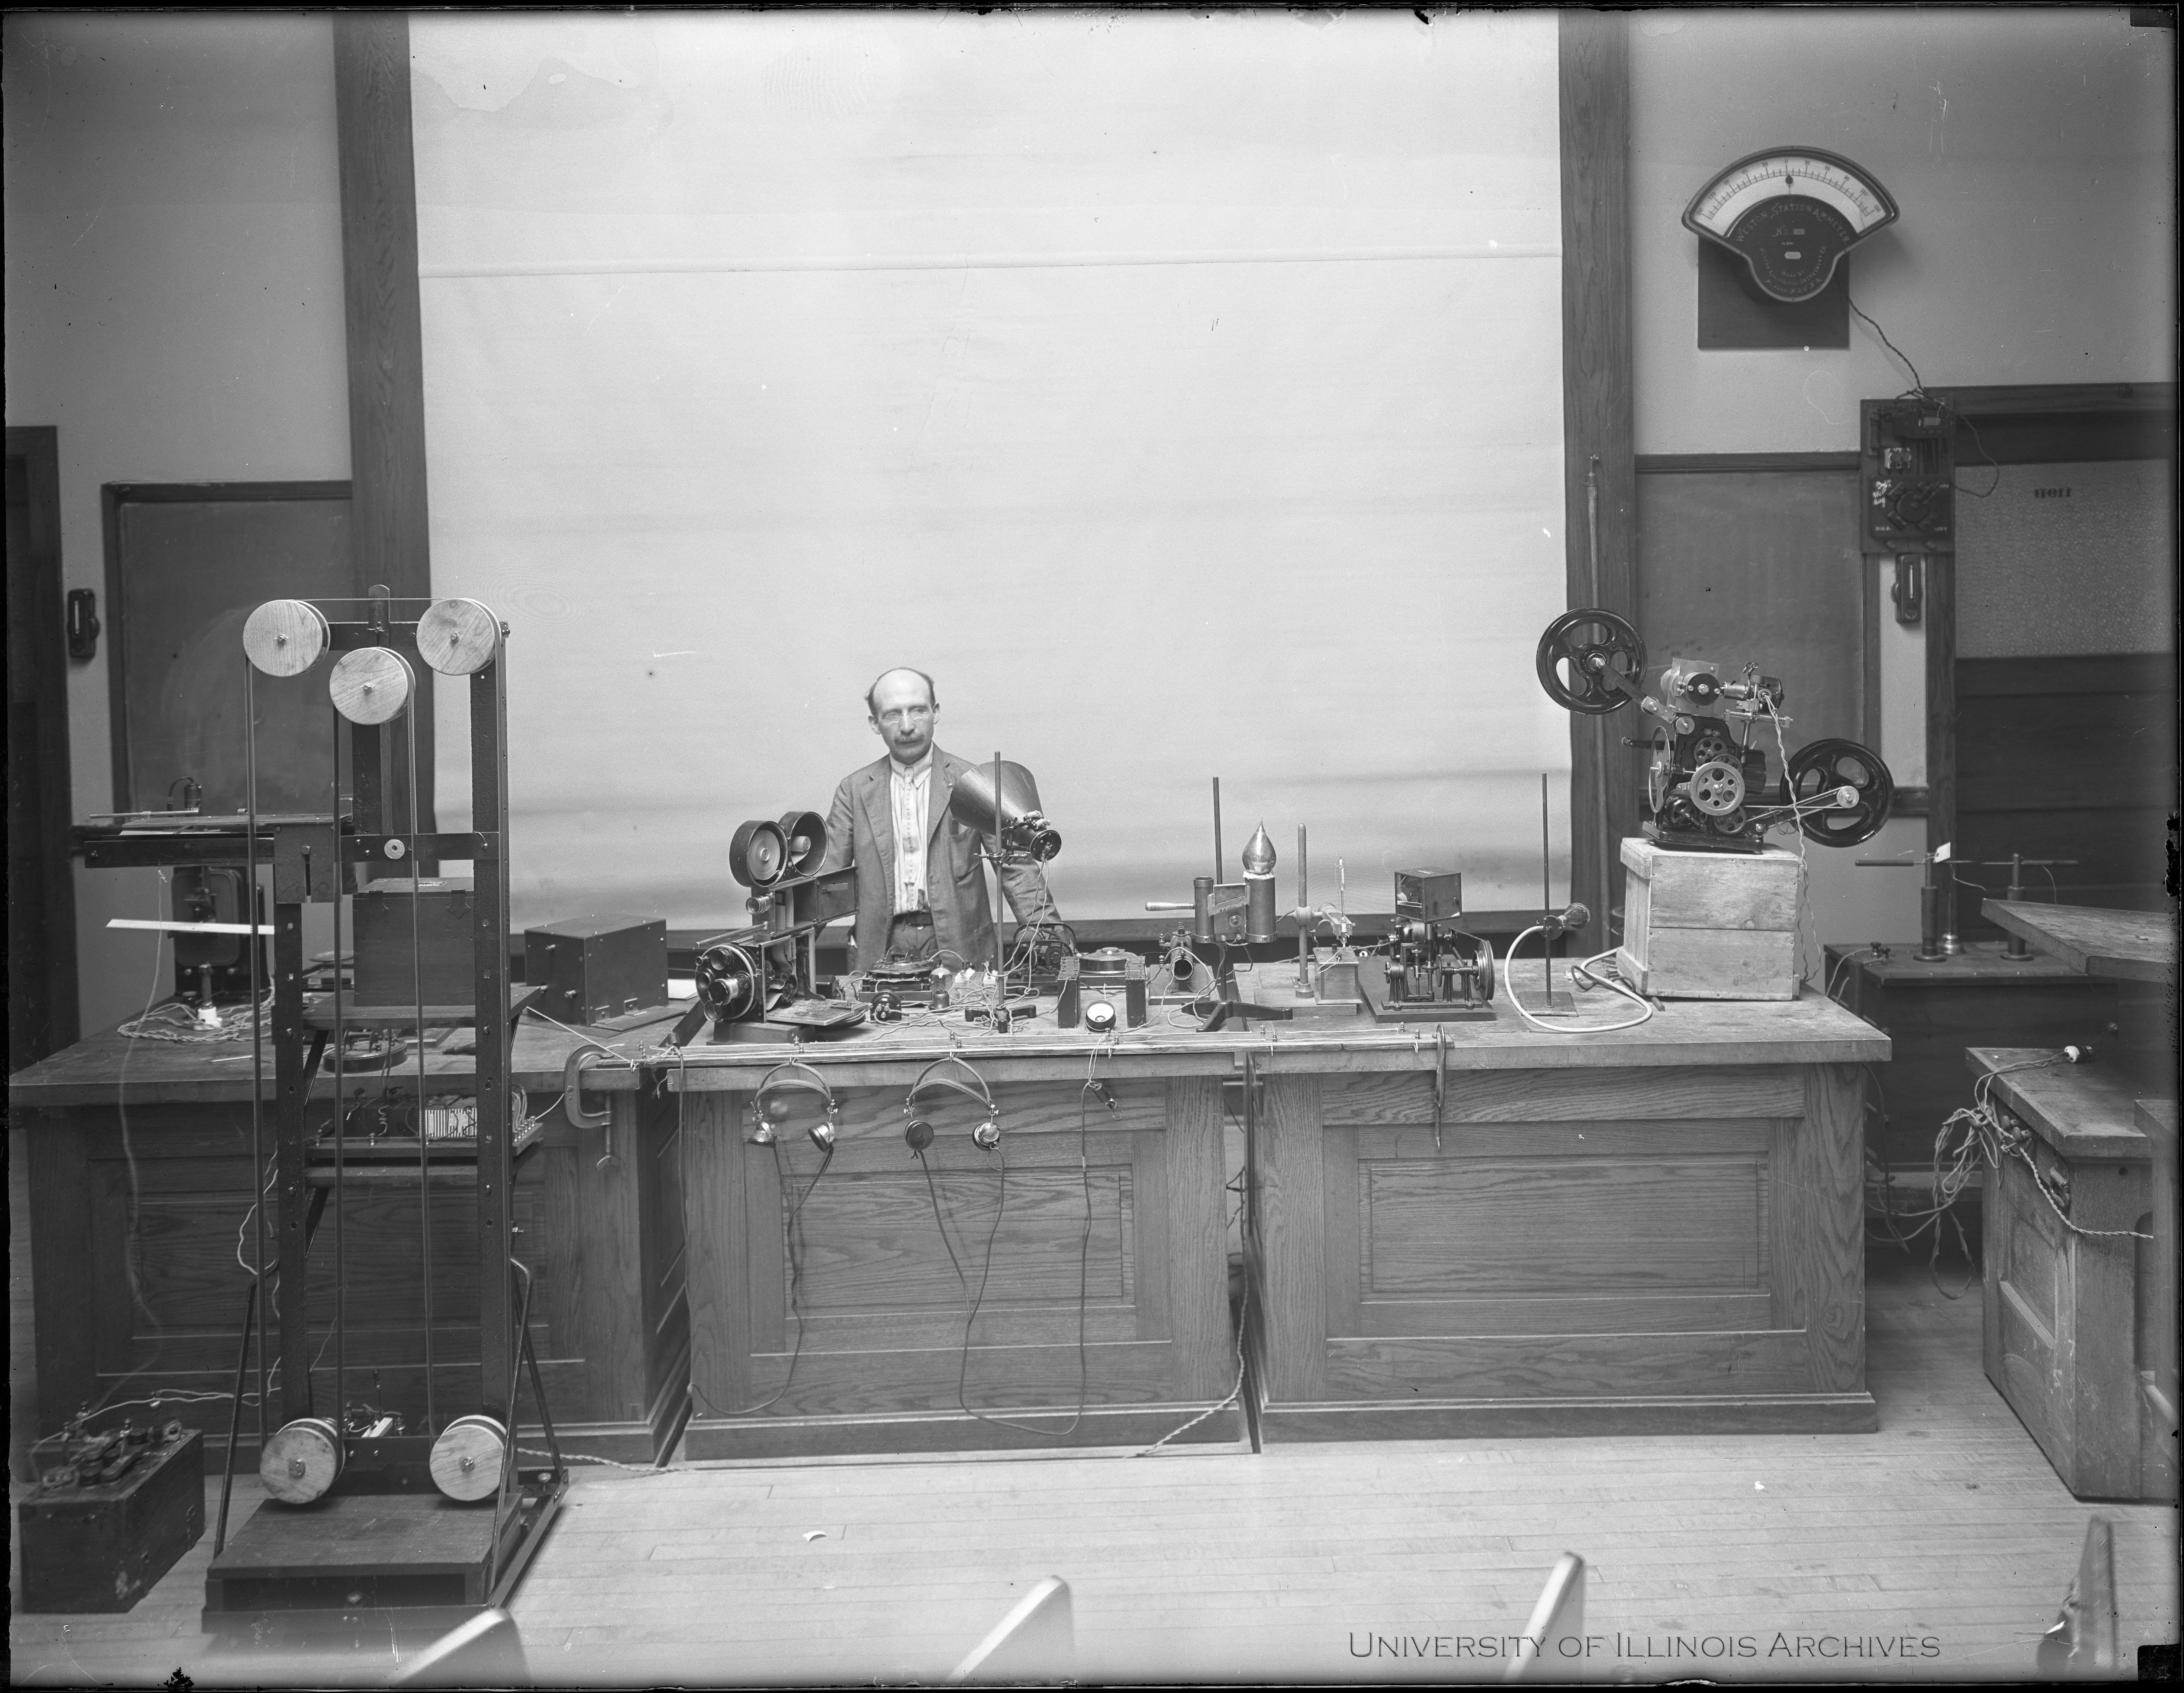 Joseph Tykociner, University of Illinois professor of electrical engineering, stands with all of the equipment used to create sound motions pictures in the world's first successful demonstration of sound on film. This demonstration was in the Ph